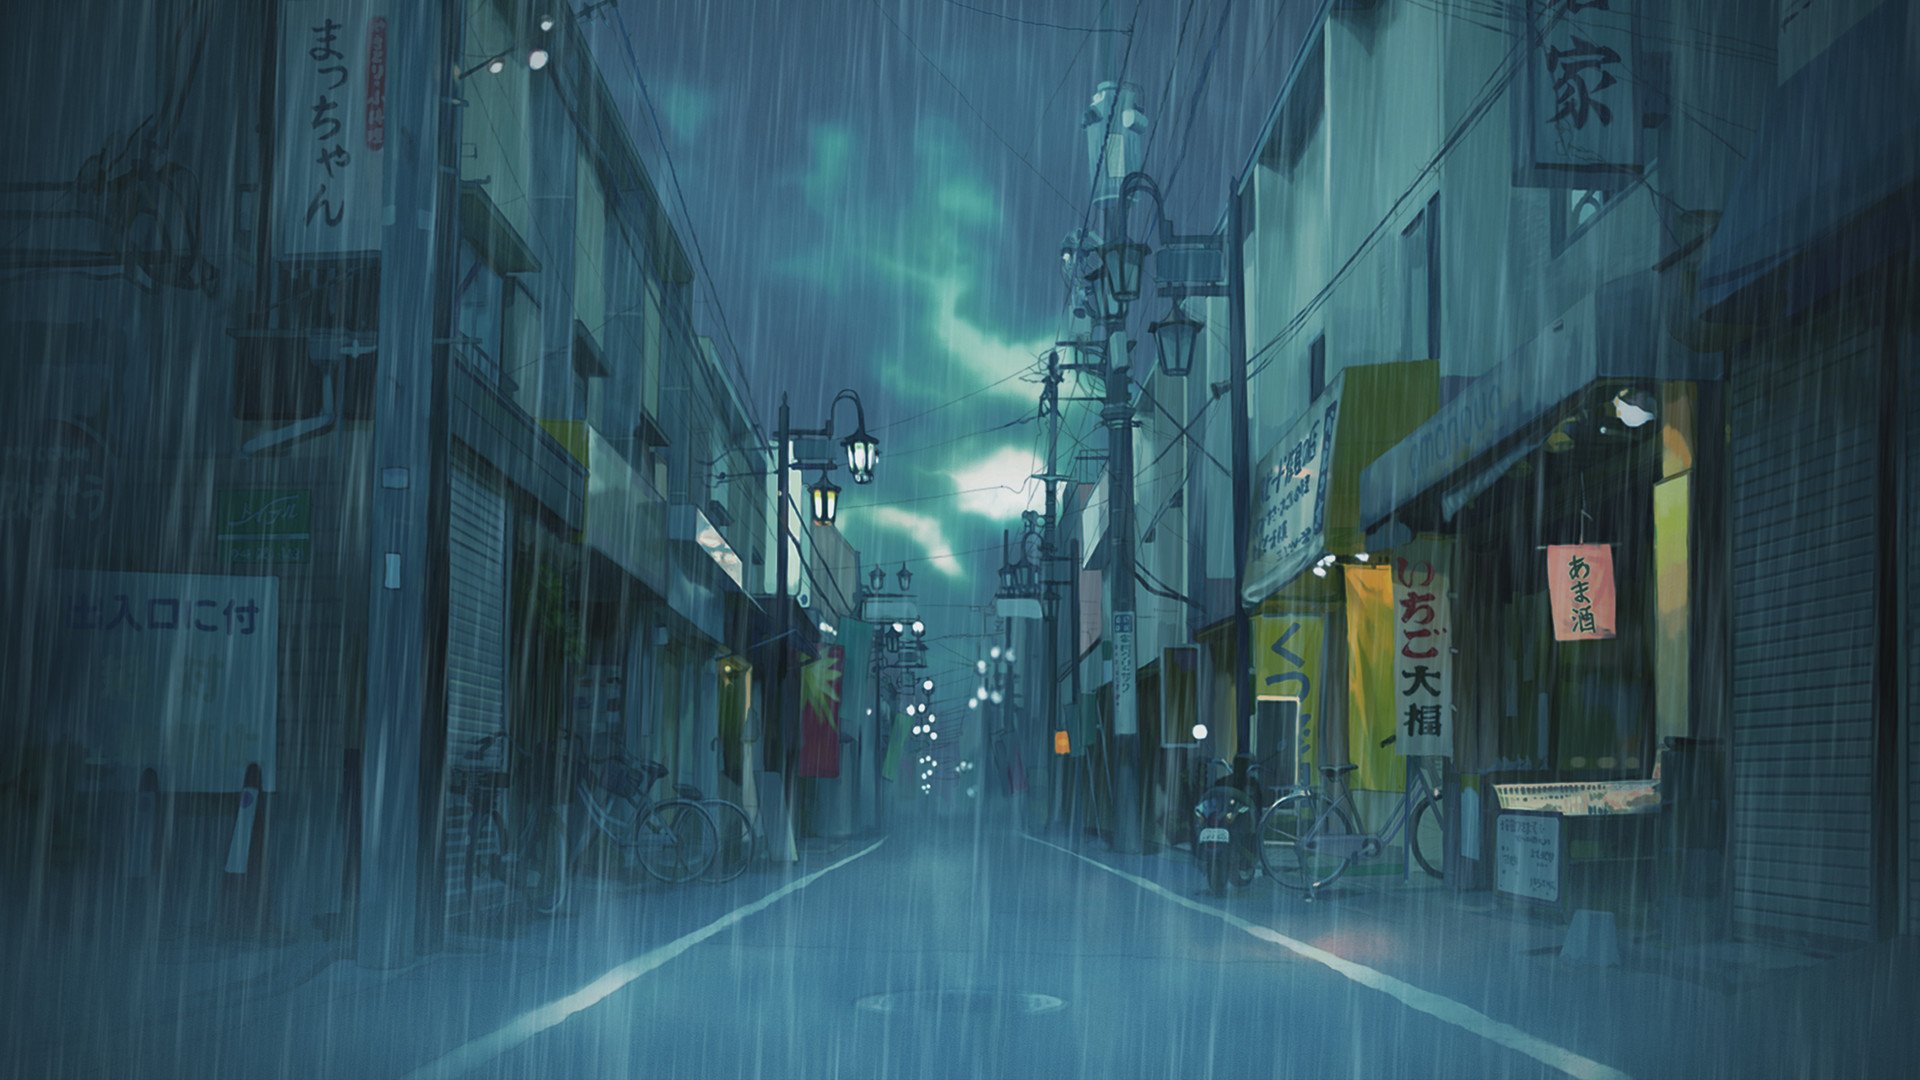 General 1920x1080 Japan street cityscape clouds rain landscape Asian illustration